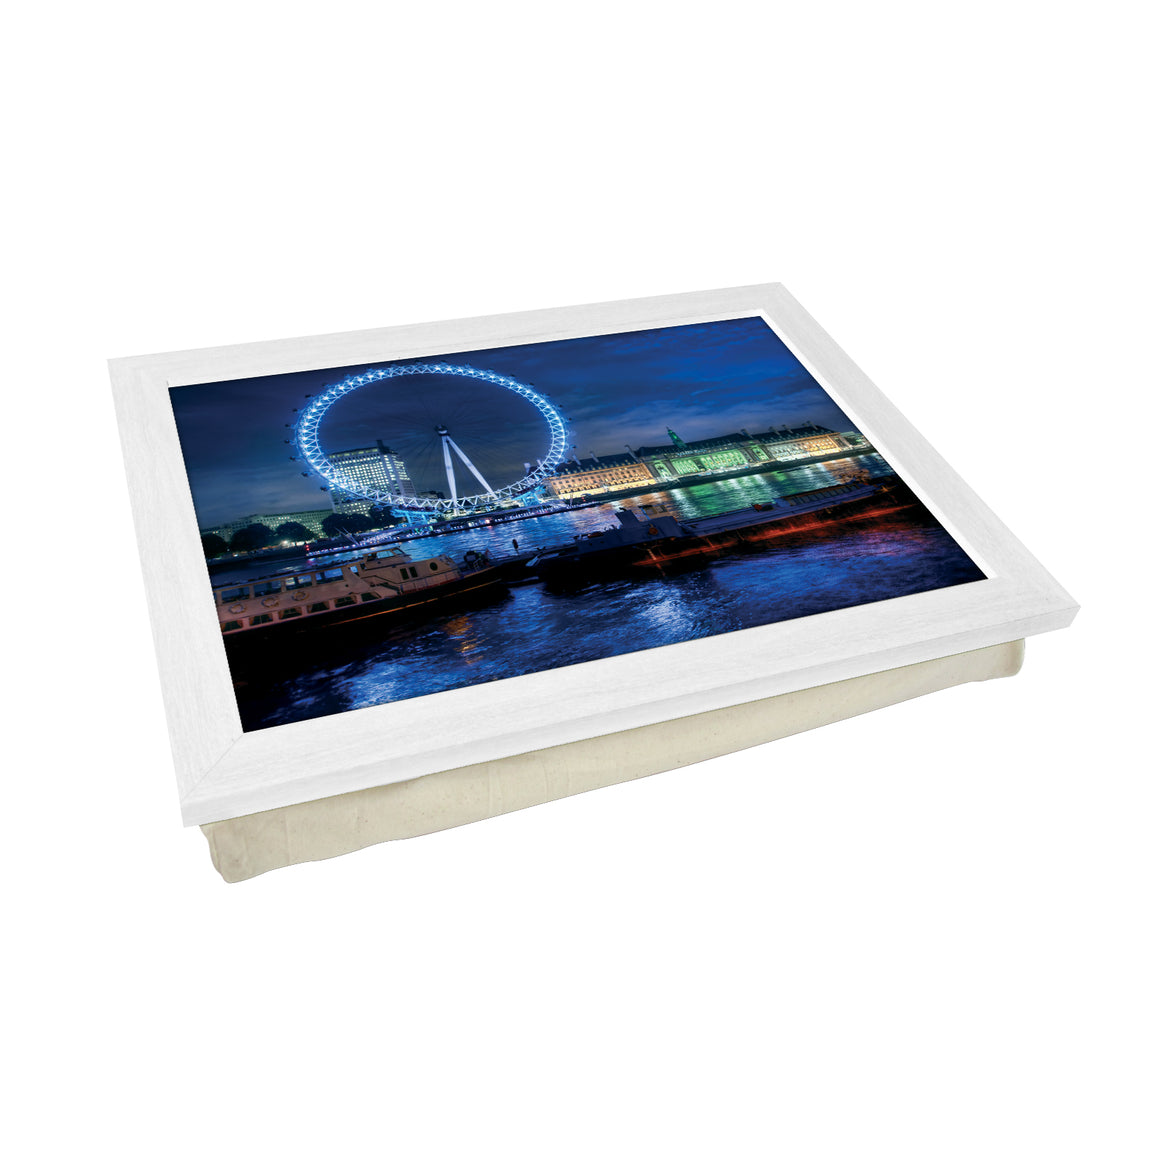 London Eye at Night Lap Tray - L0082